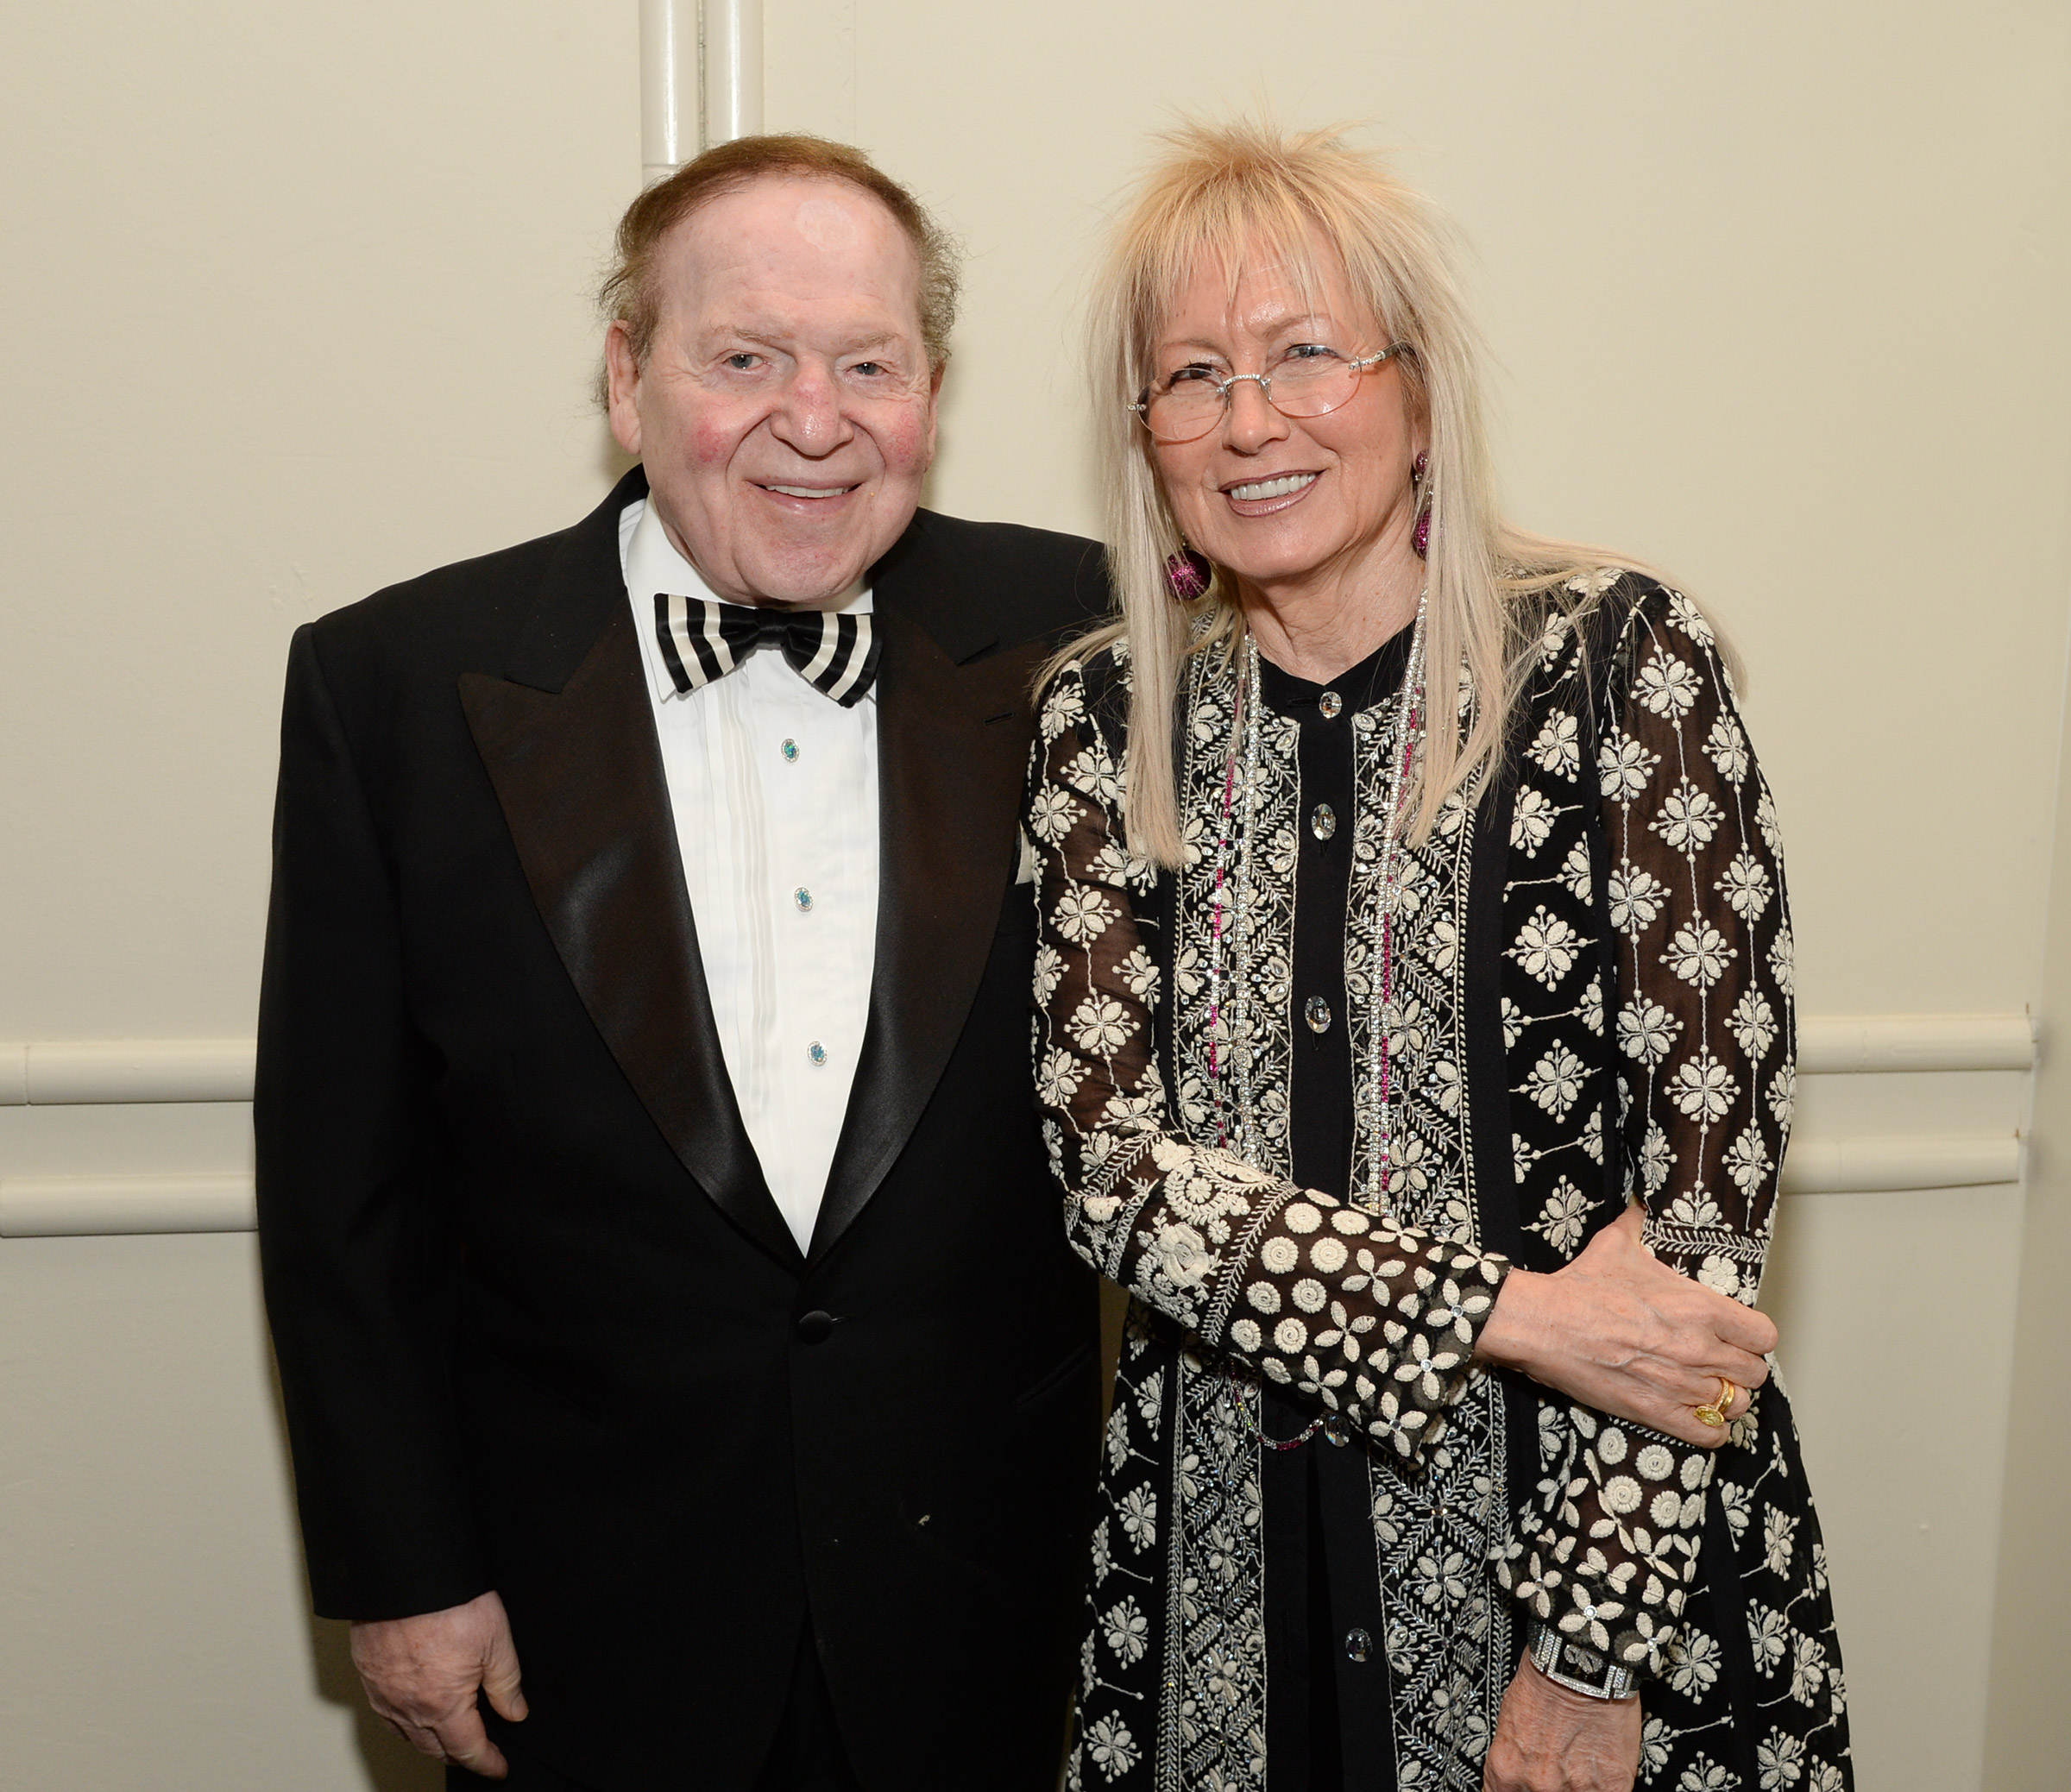 Sheldon Adelson and Dr. Miriam Adelson attend the John Wayne Cancer Institute Auxiliary's 29th Annual Odyssey Ball on April 5, 2014, in Beverly Hills.